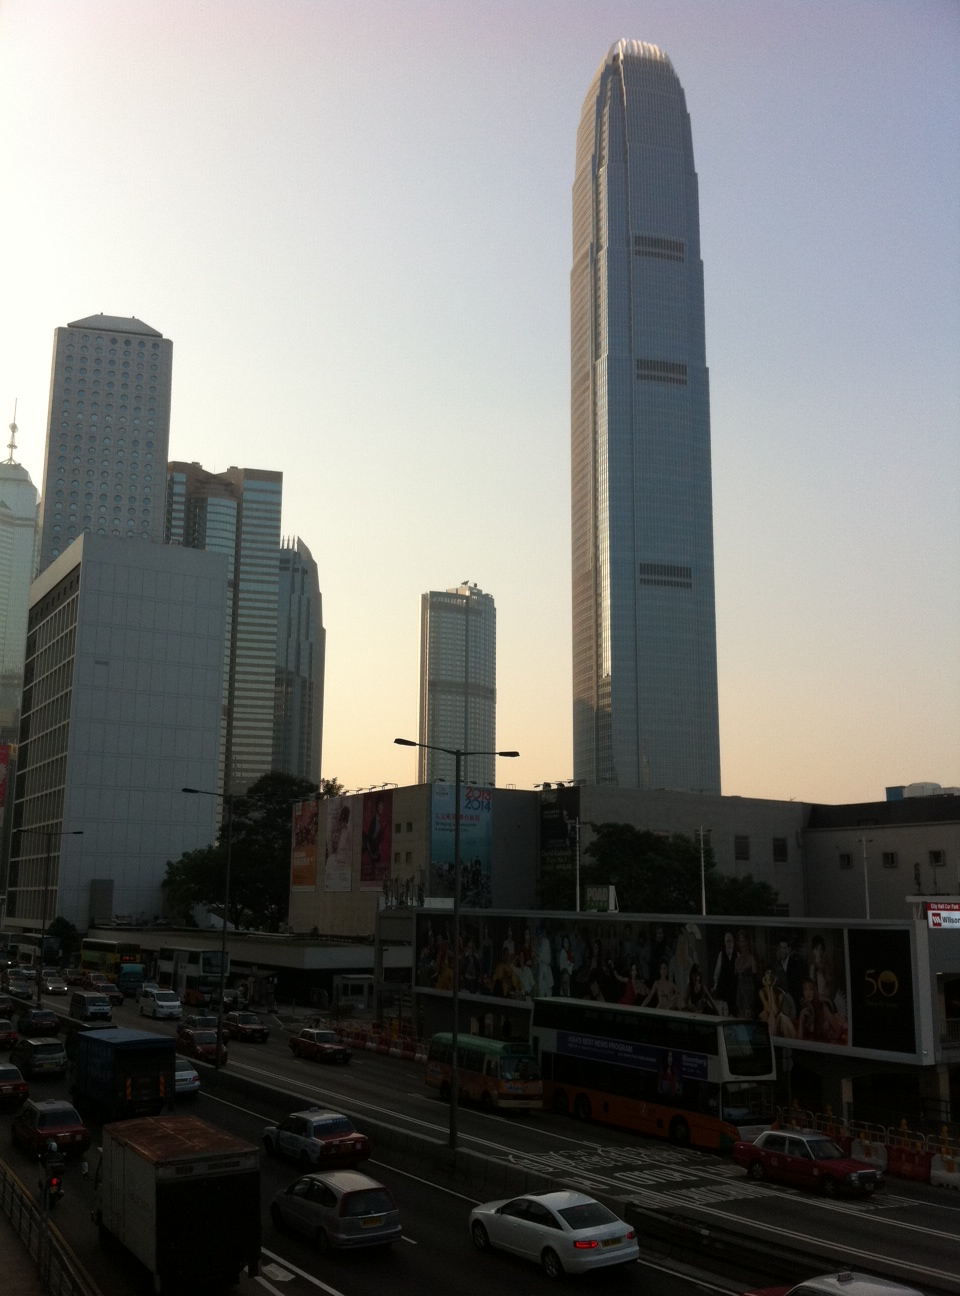 Evening view of the Central Business District in Hong Kong